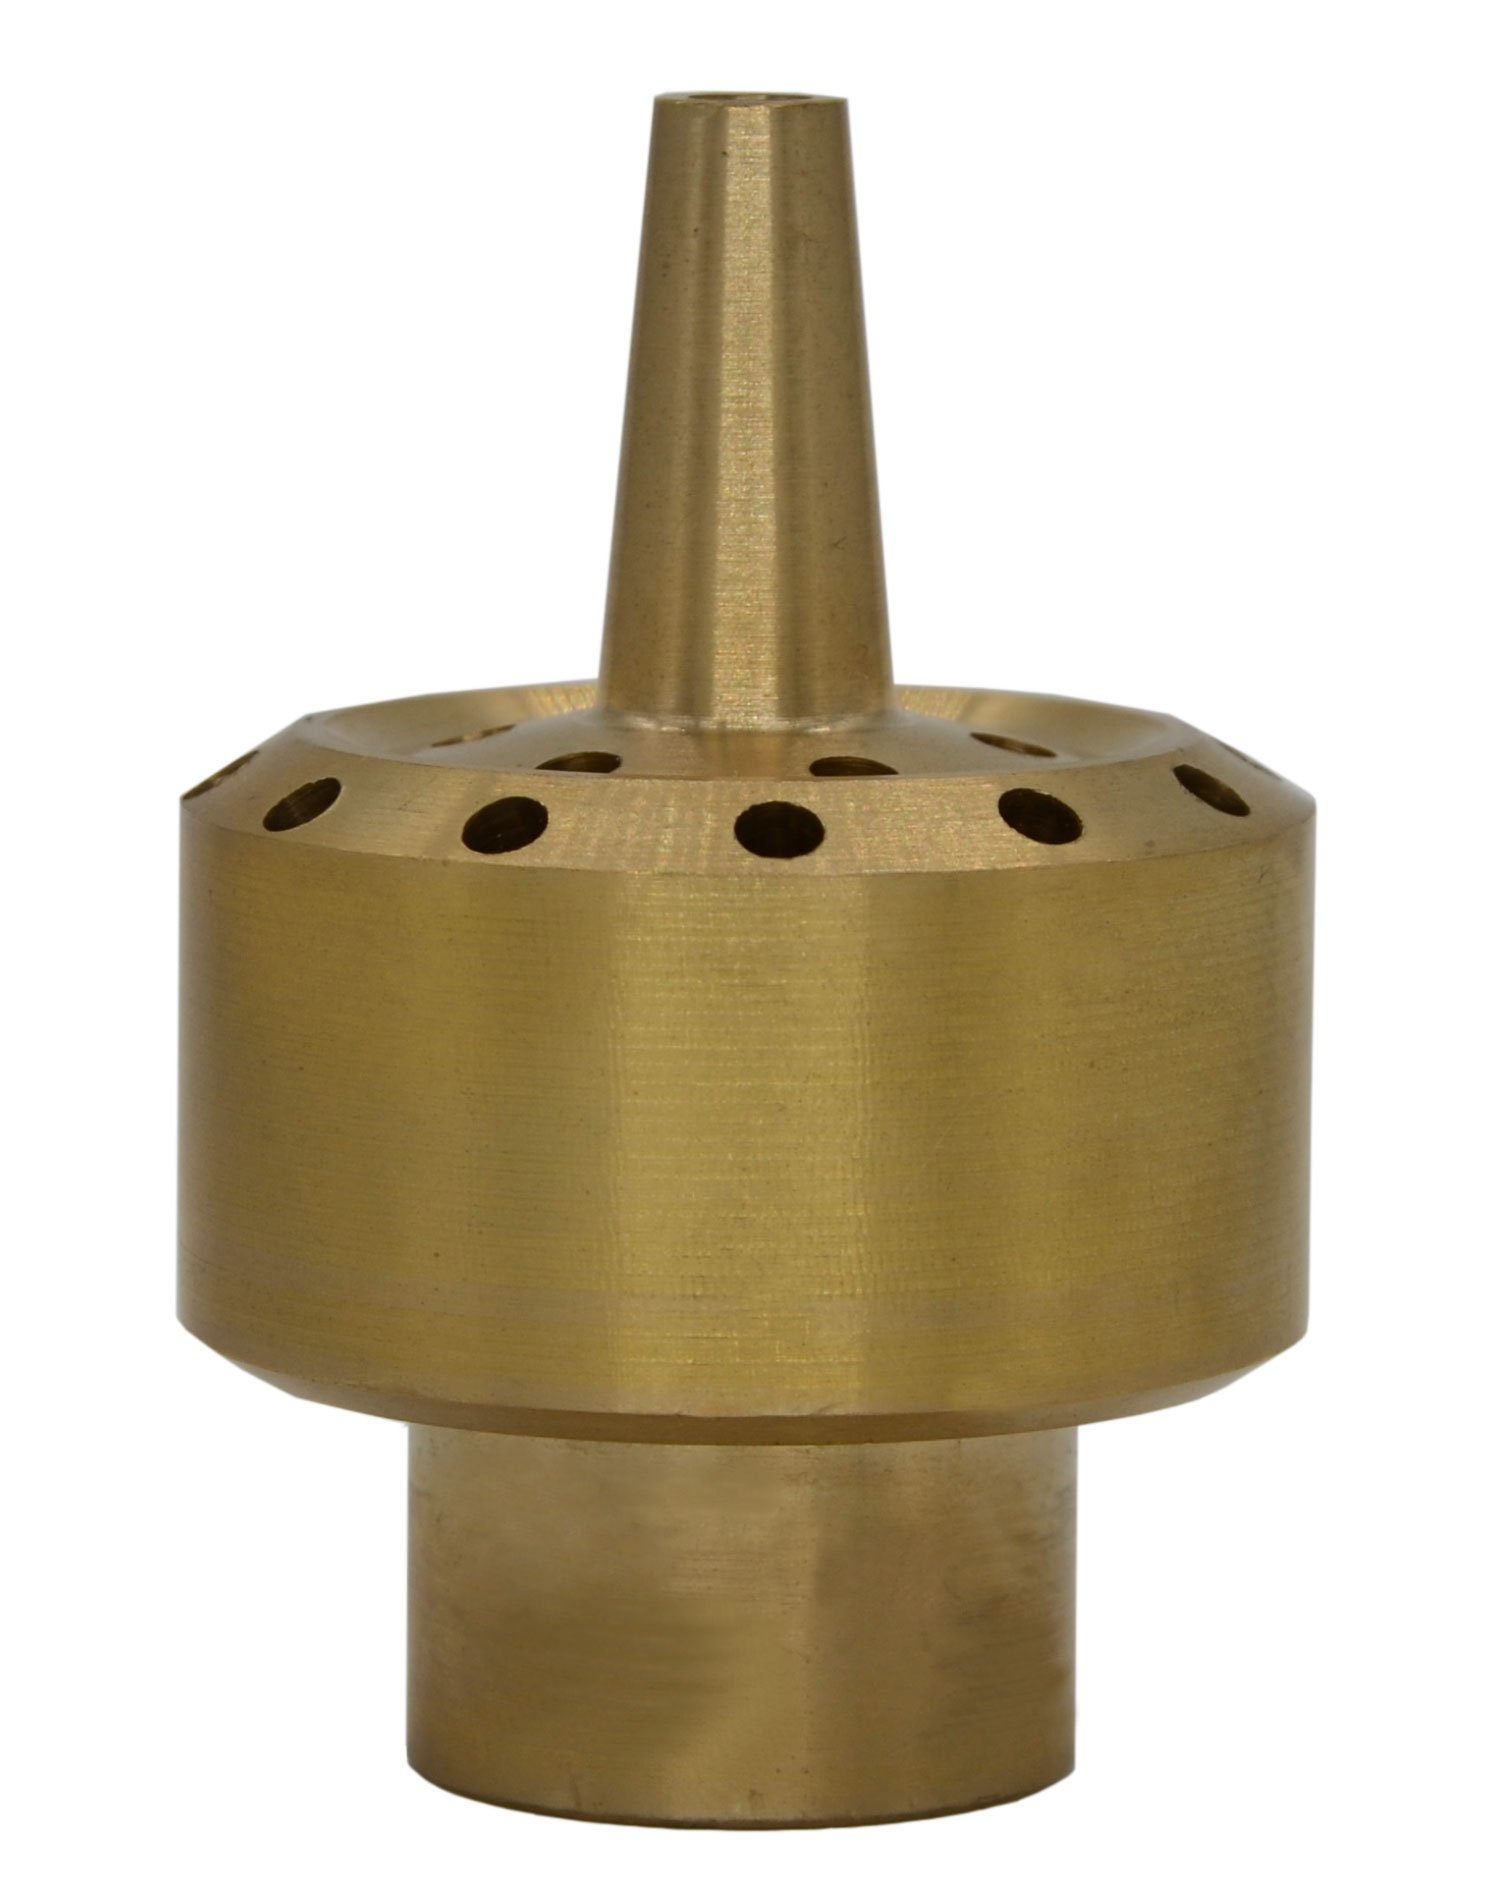 Thaoya Brass Column Garden Square Fireworks Pool Pond Fountain Nozzle Sprinkler Spray Head SSH327 (DN40/G:1.5')